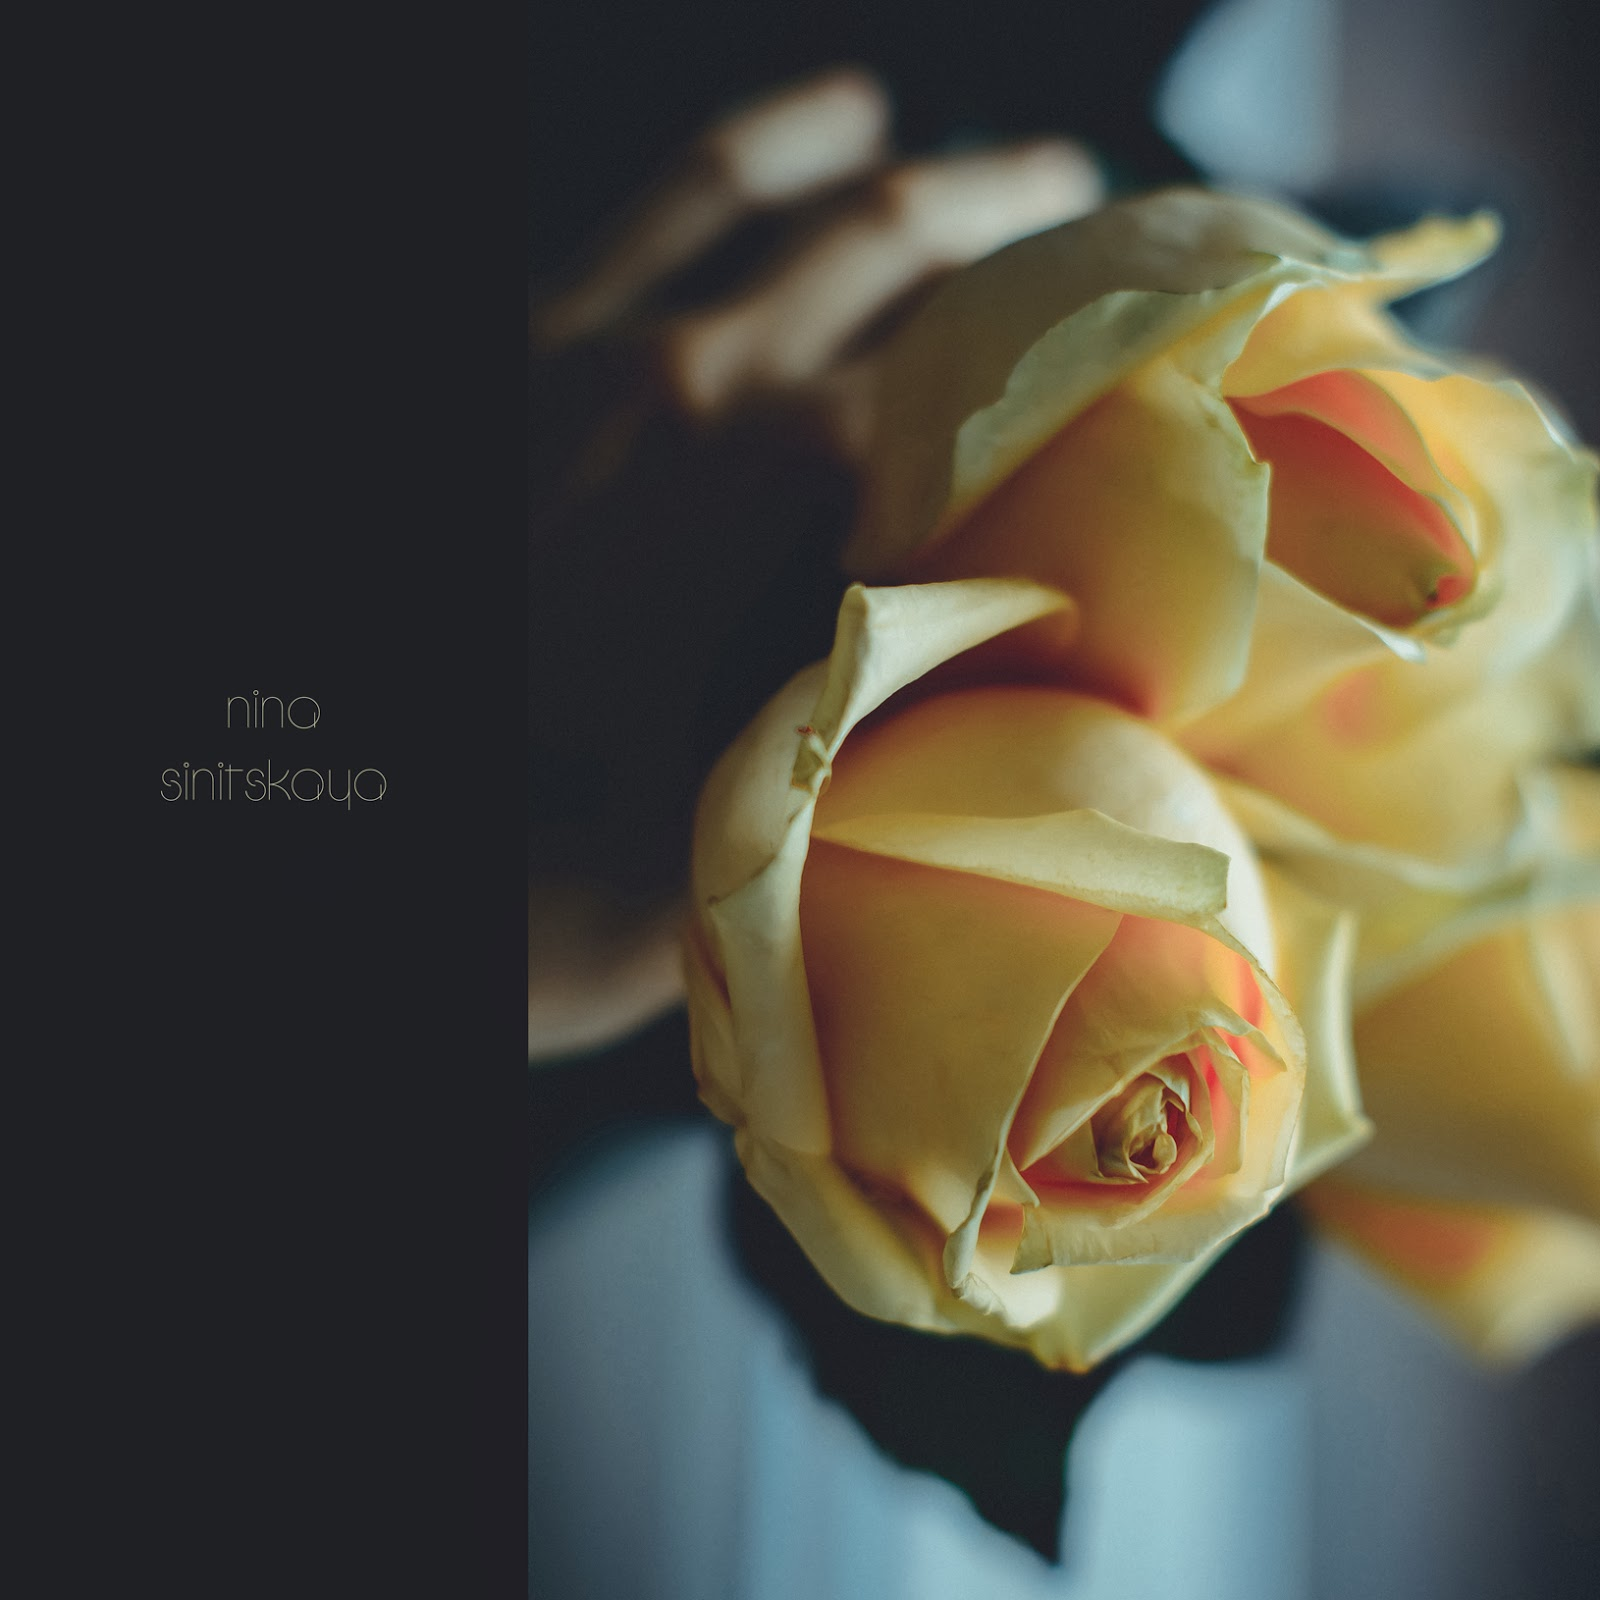 Floral Photography. Peach roses on the dark background. Soft focus and dreamy look